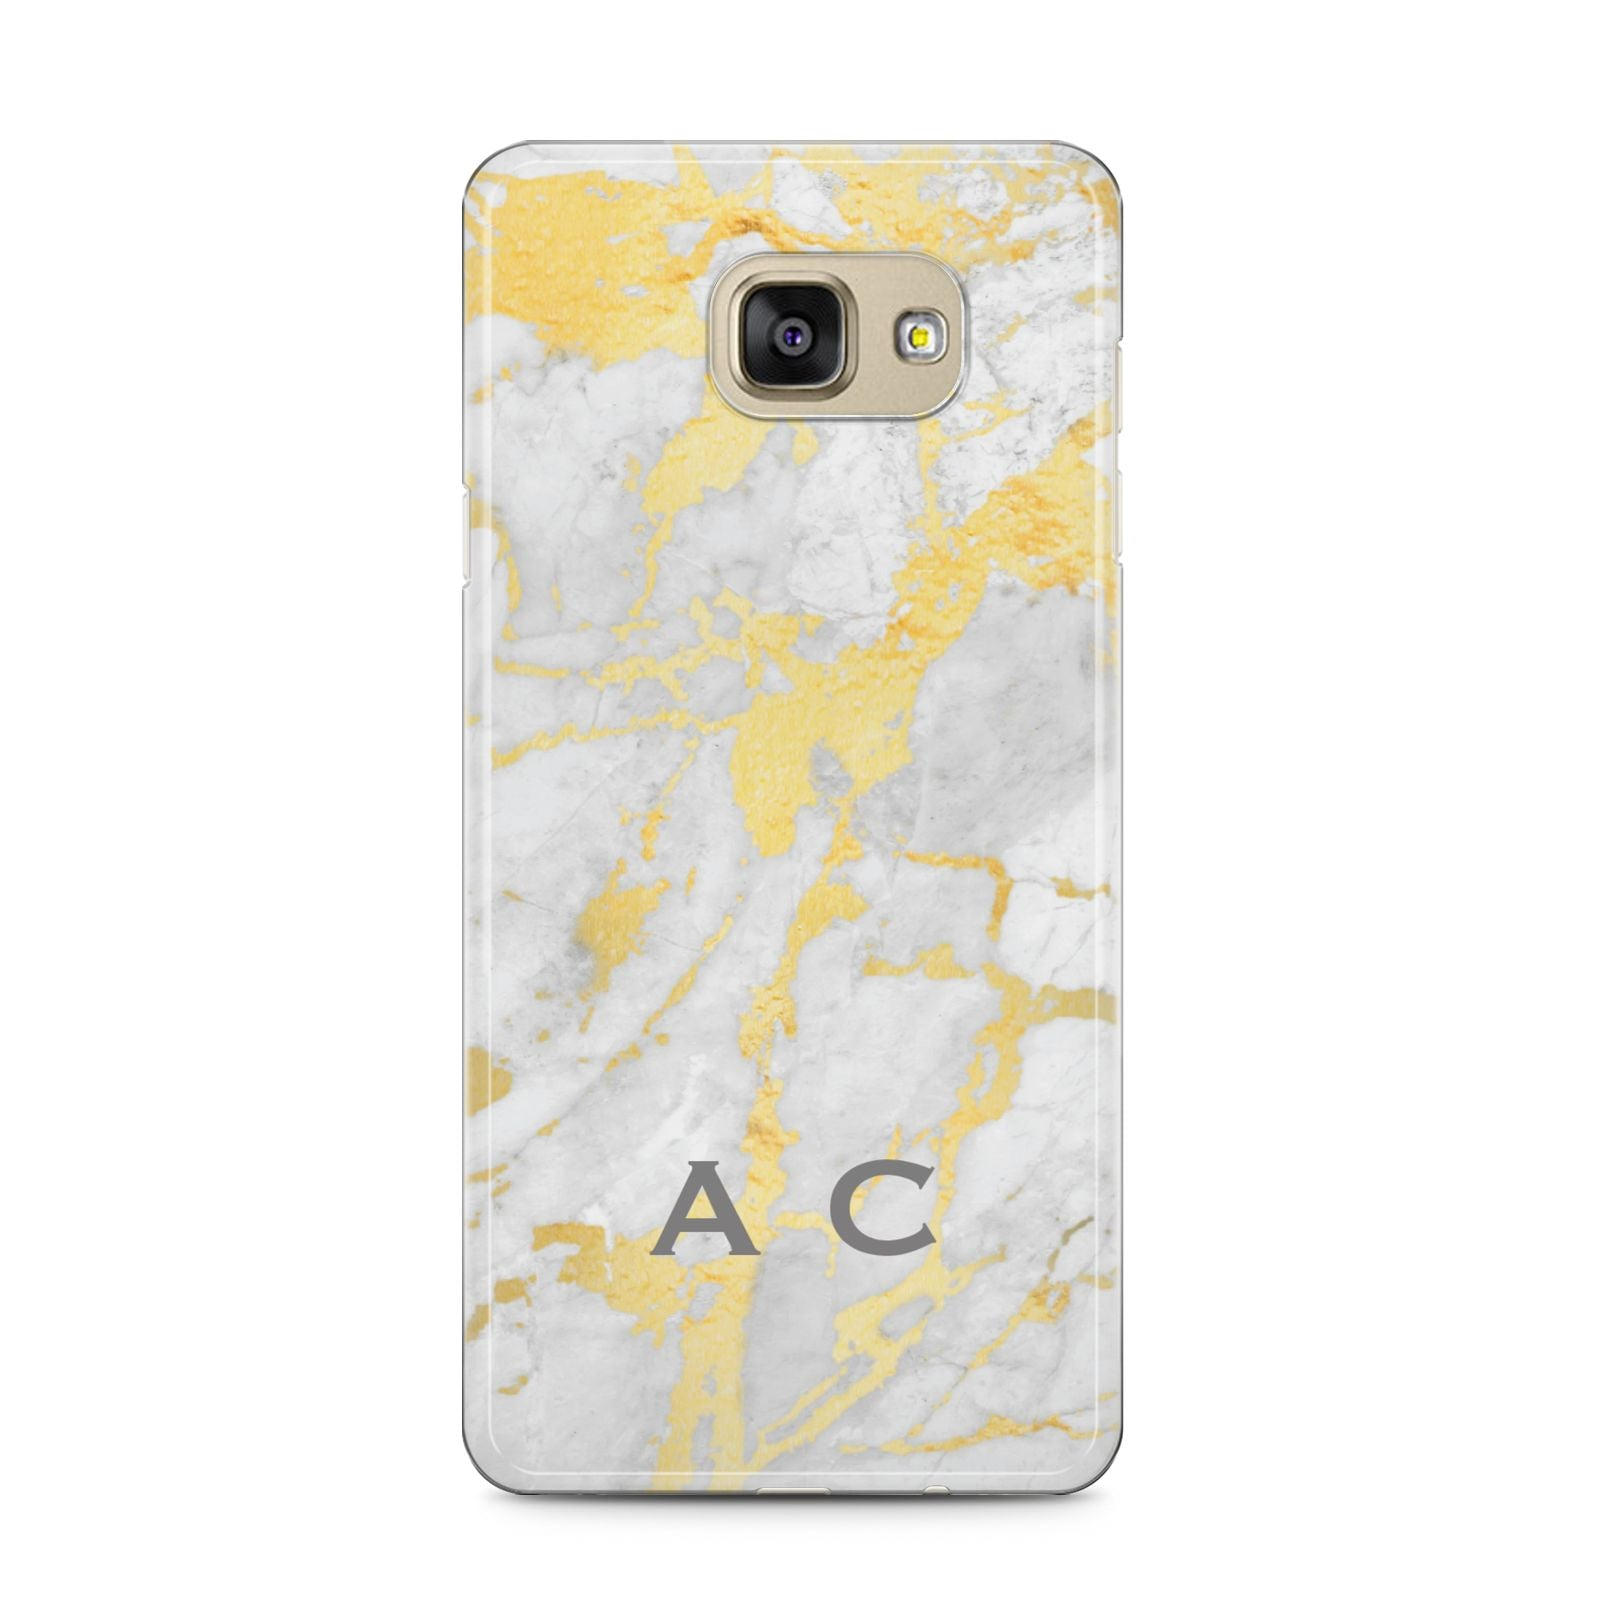 Gold Marble Initials Personalised Samsung Galaxy A5 2016 Case on gold phone